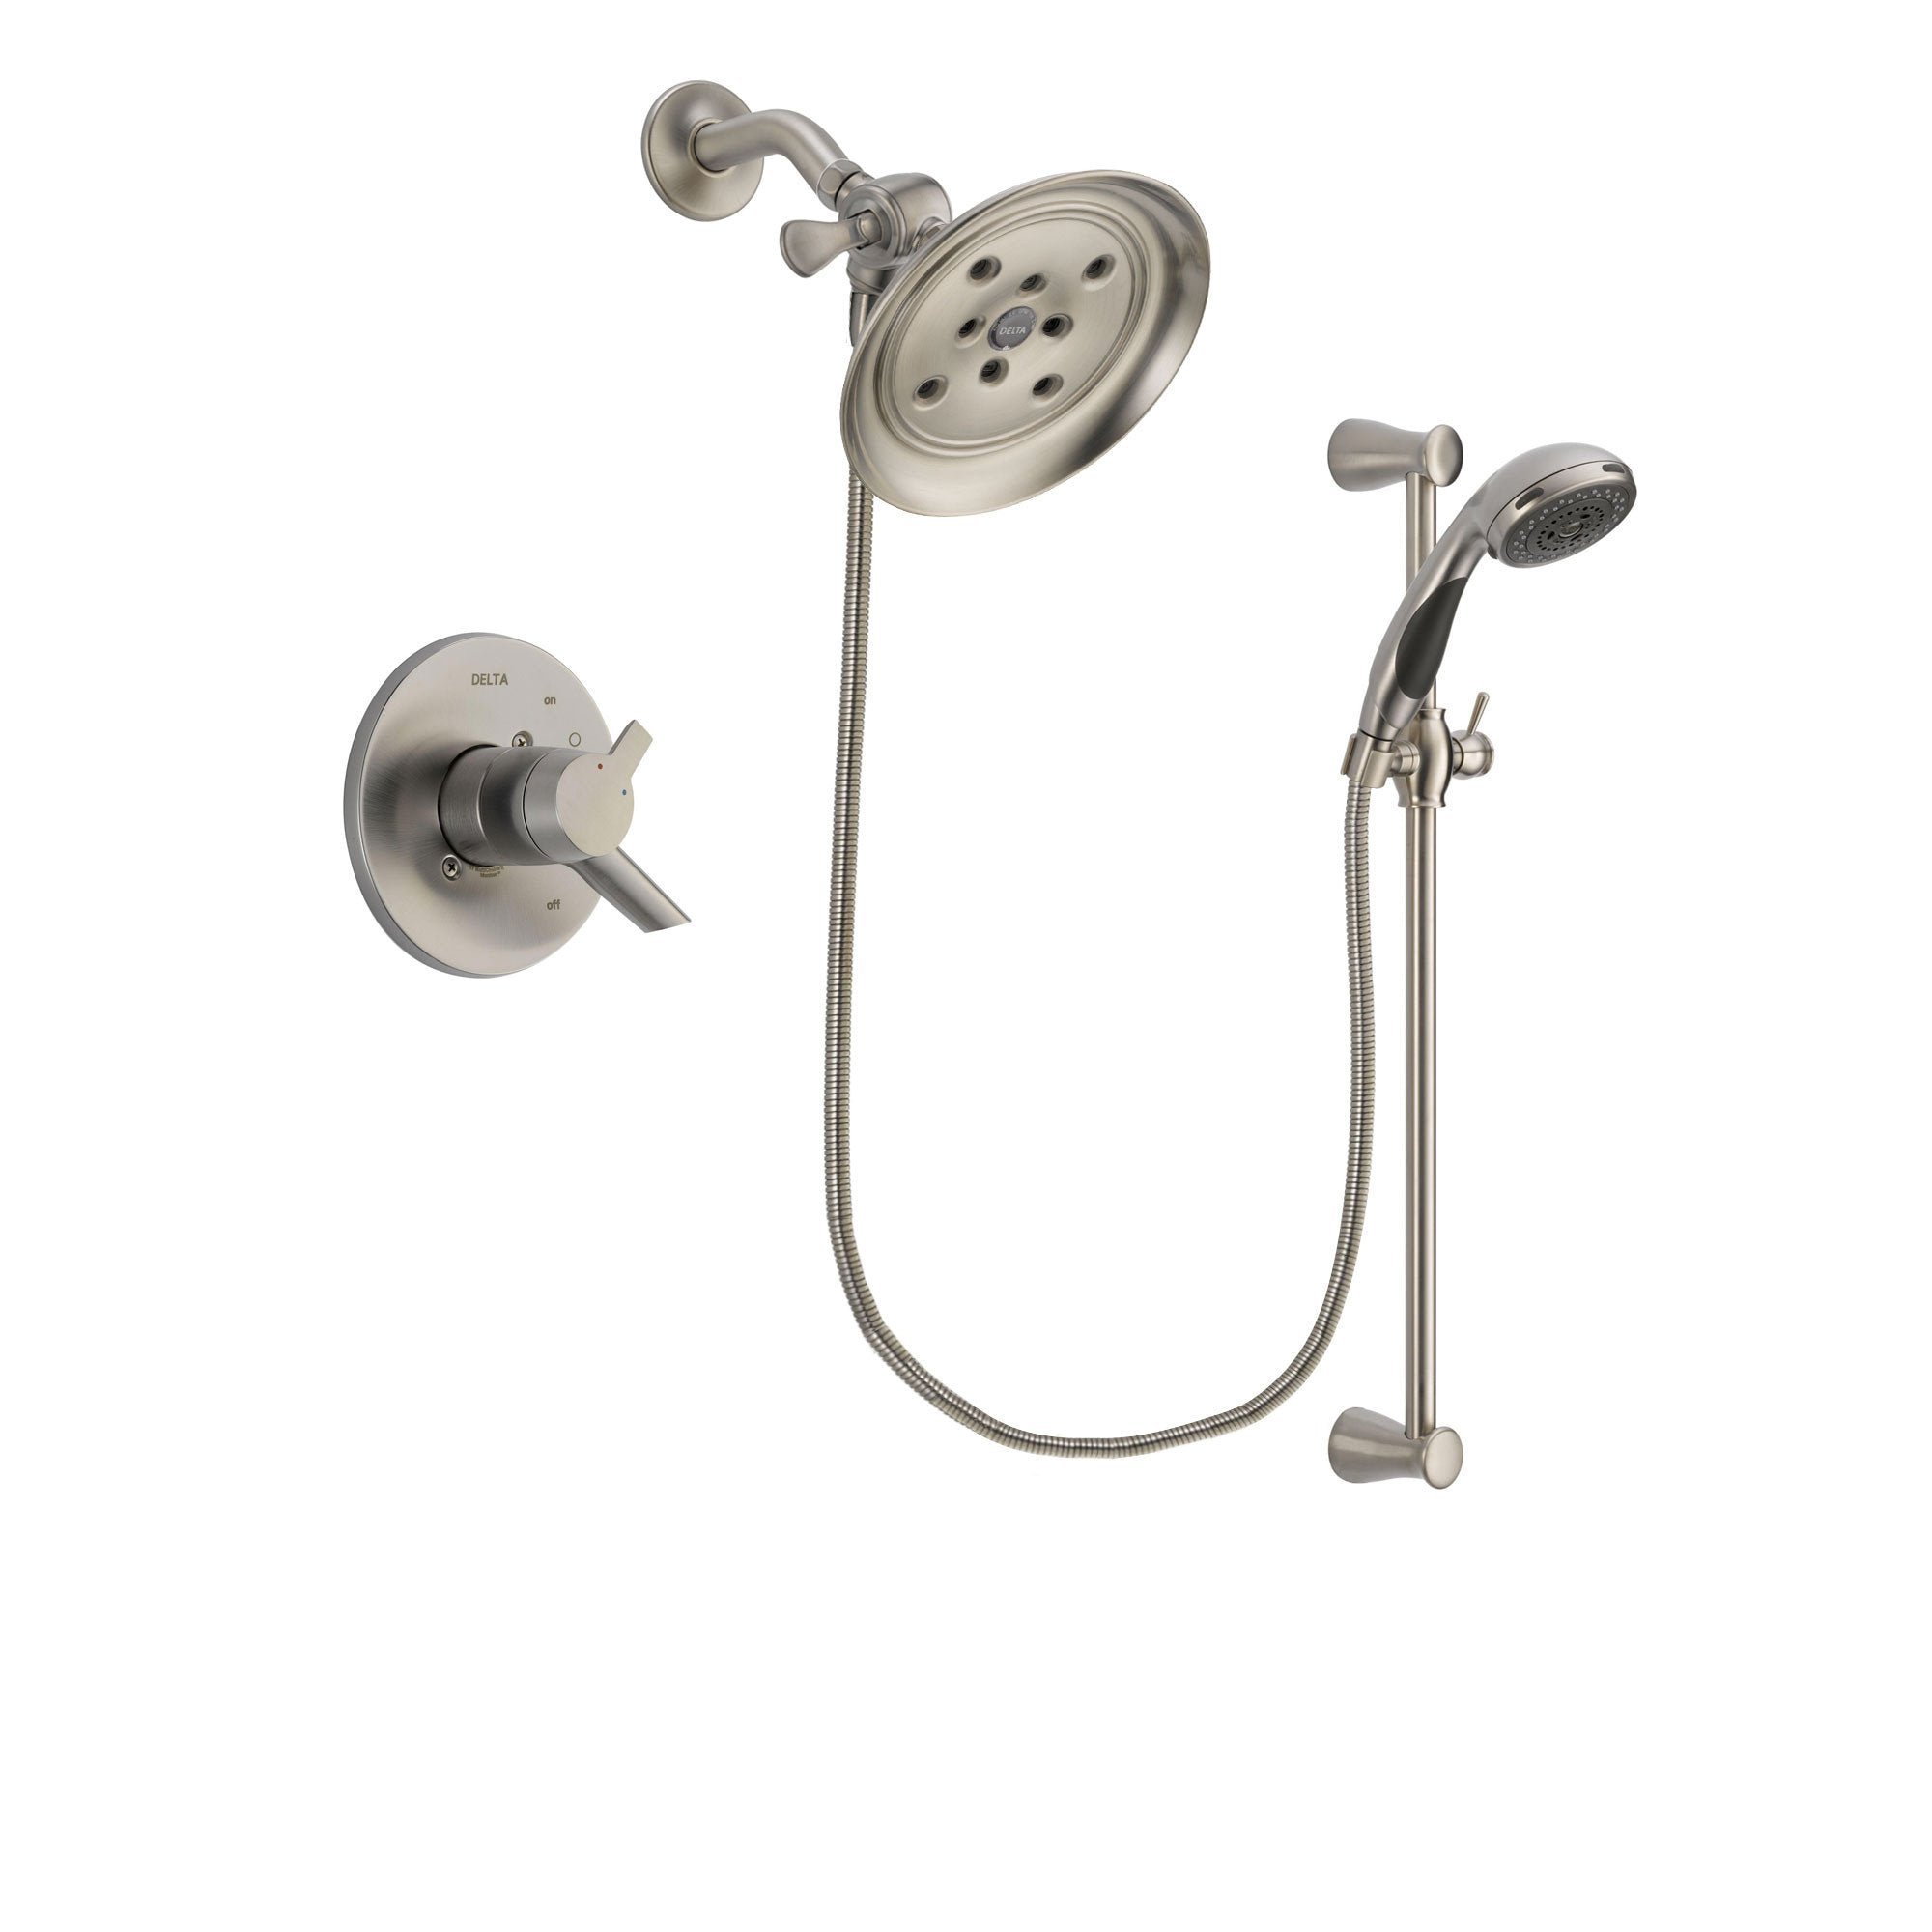 Delta Compel Stainless Steel Finish Shower Faucet System w/ Hand Spray DSP1606V